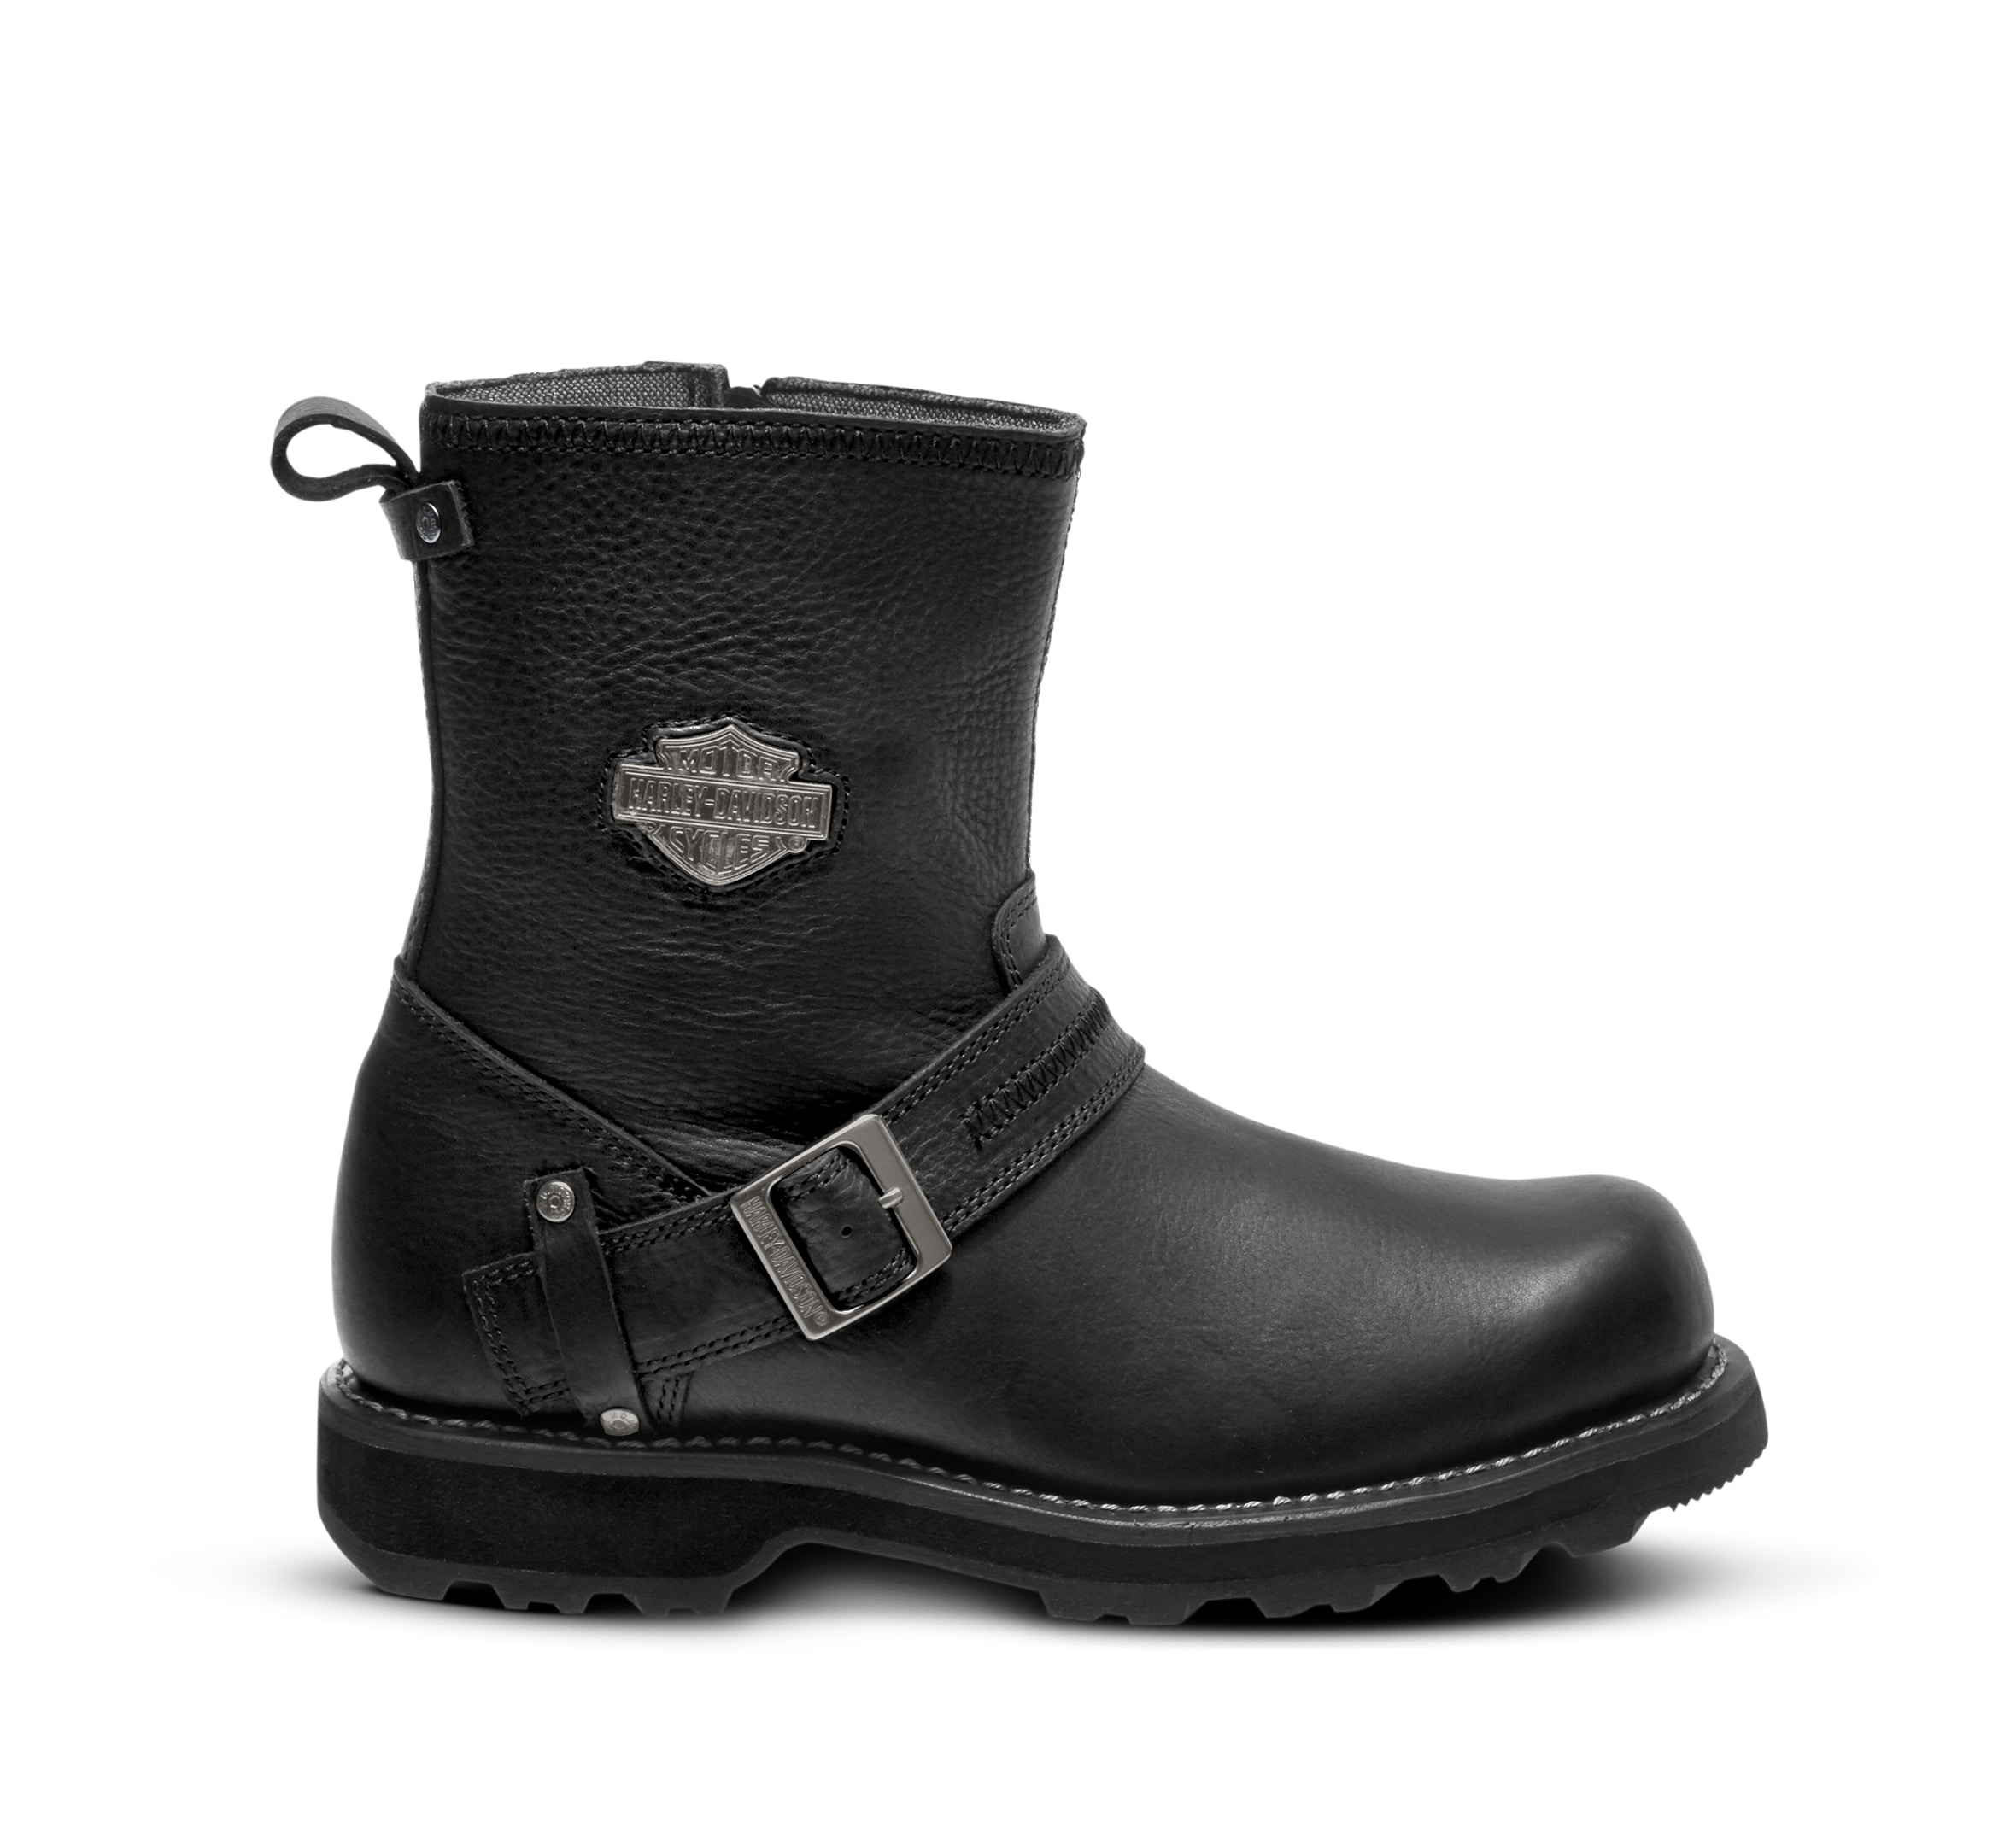 Mens Harley Davidson RR-Richton Leather Biker Riding Zip-Up Boots Sizes 6 to 12